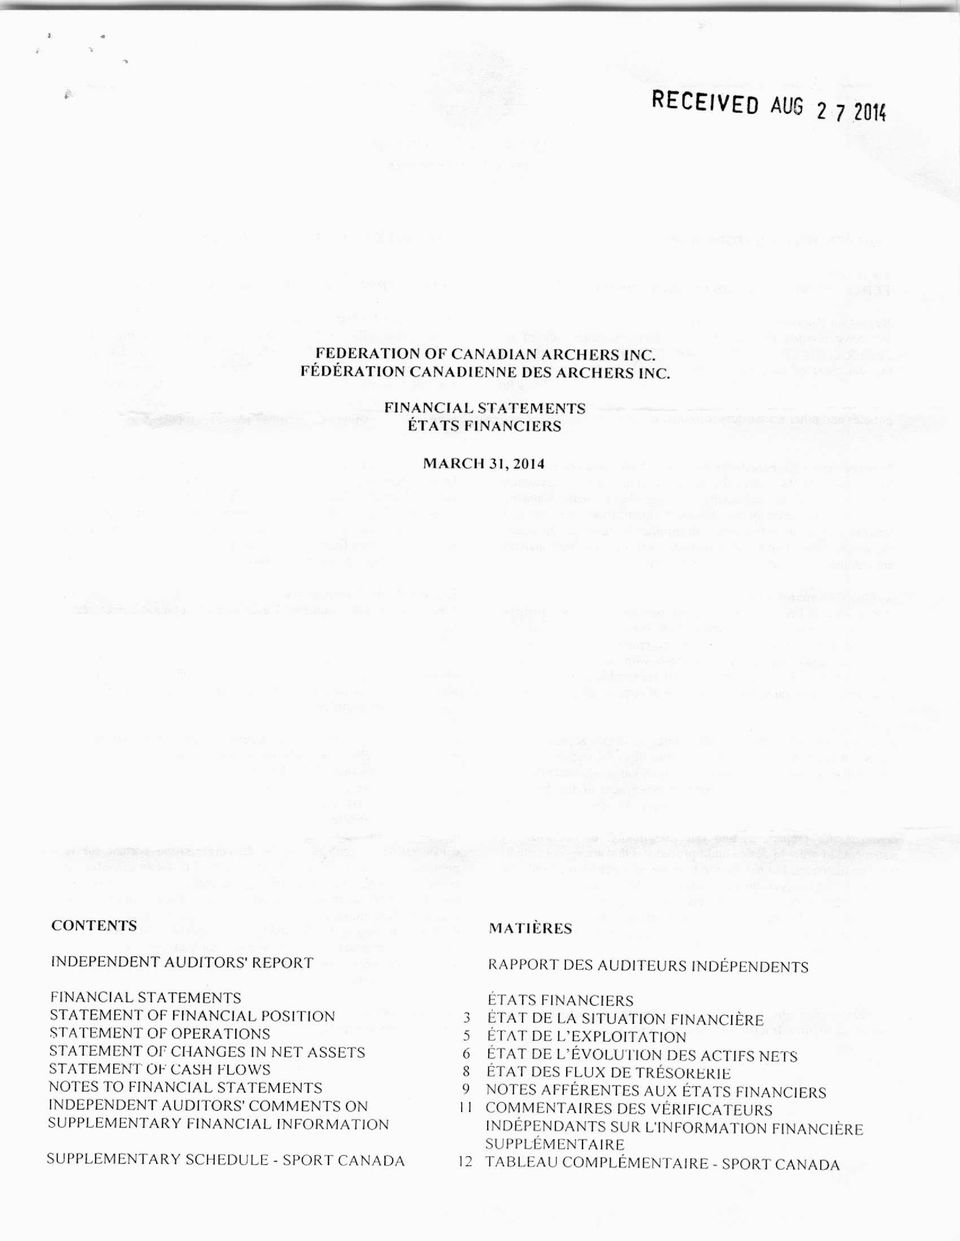 ASSETS STATEMENT OF CASH FLOWS NOTES TO FINANCIAL STATEMENTS INDEPENDENT AUDITORS' COMMENTS ON SUPPLEMENTARY FINANCIAL INFORMATION SUPPLEMENTARY SCHEDULE - SPORT CANADA M ATI ERES RAPPORT DES